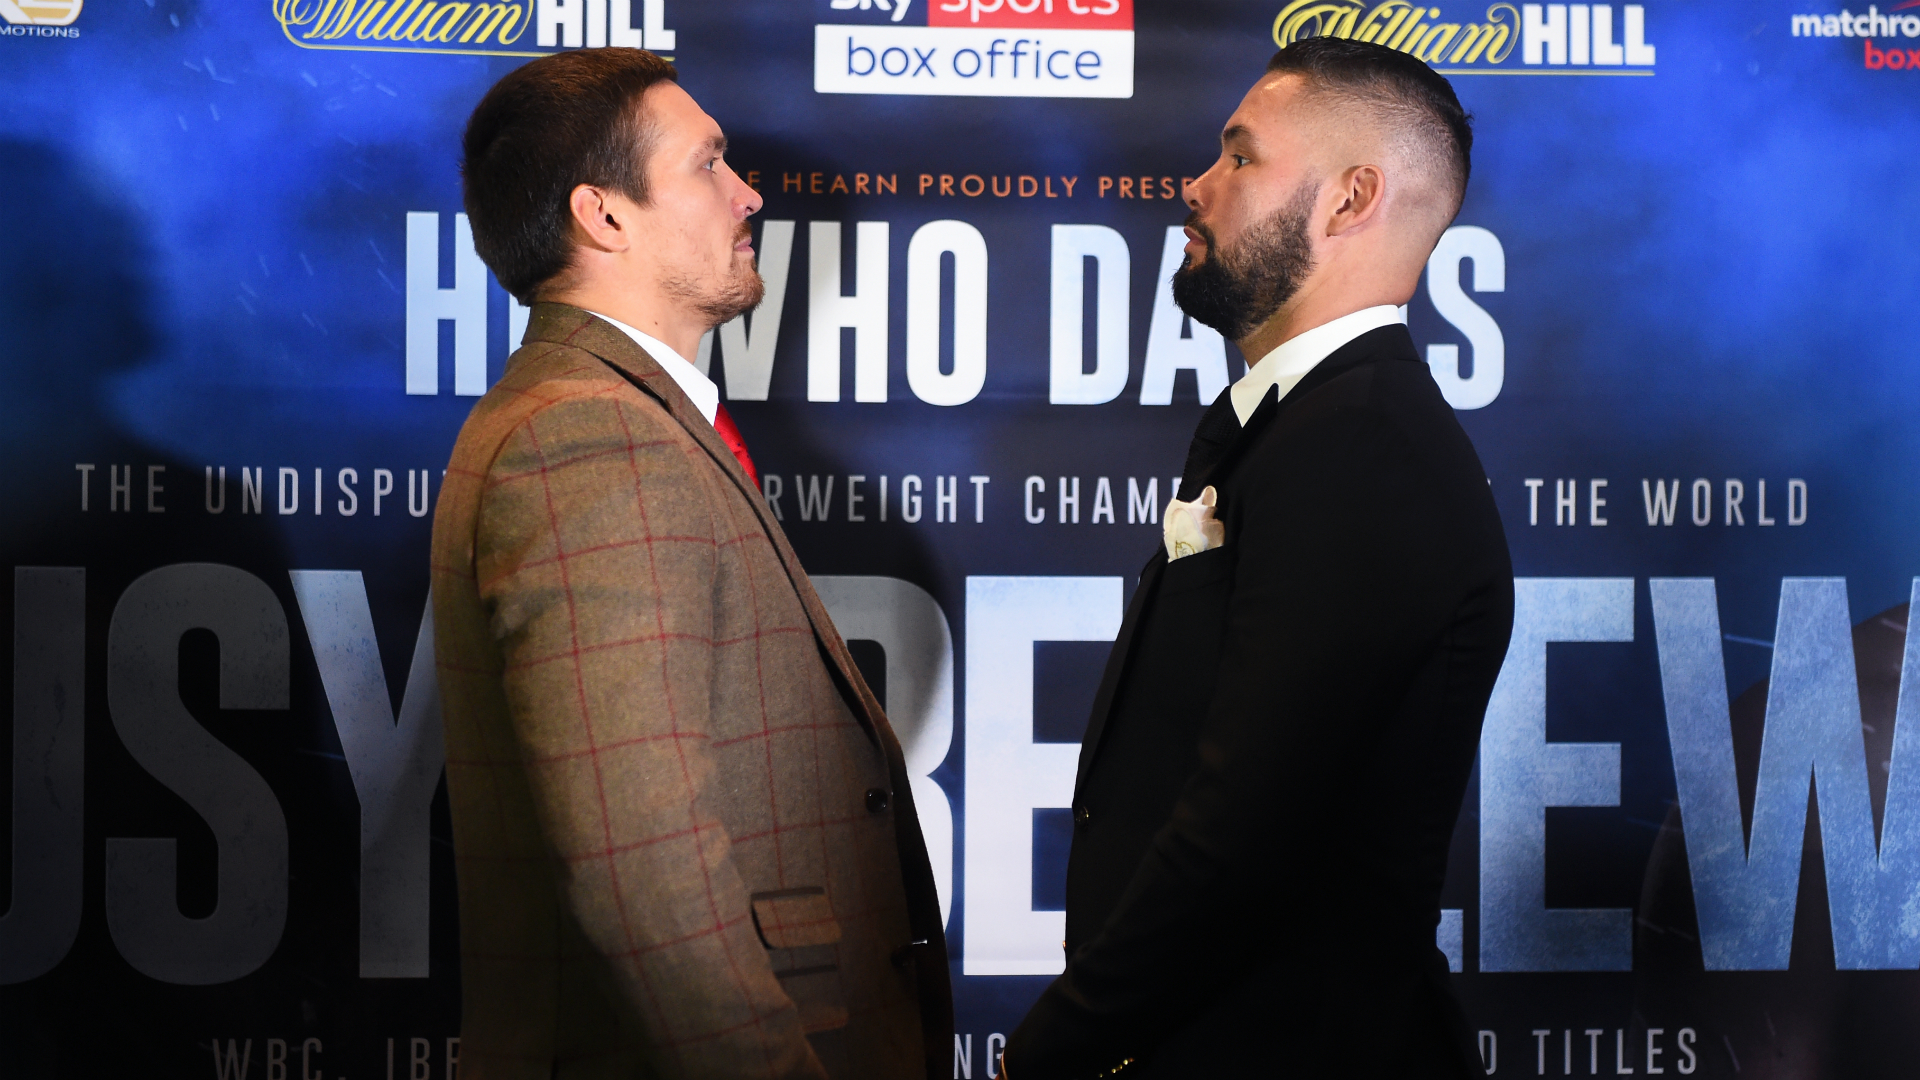 Usyk and Bellew make weight ahead of cruiserweight showdown